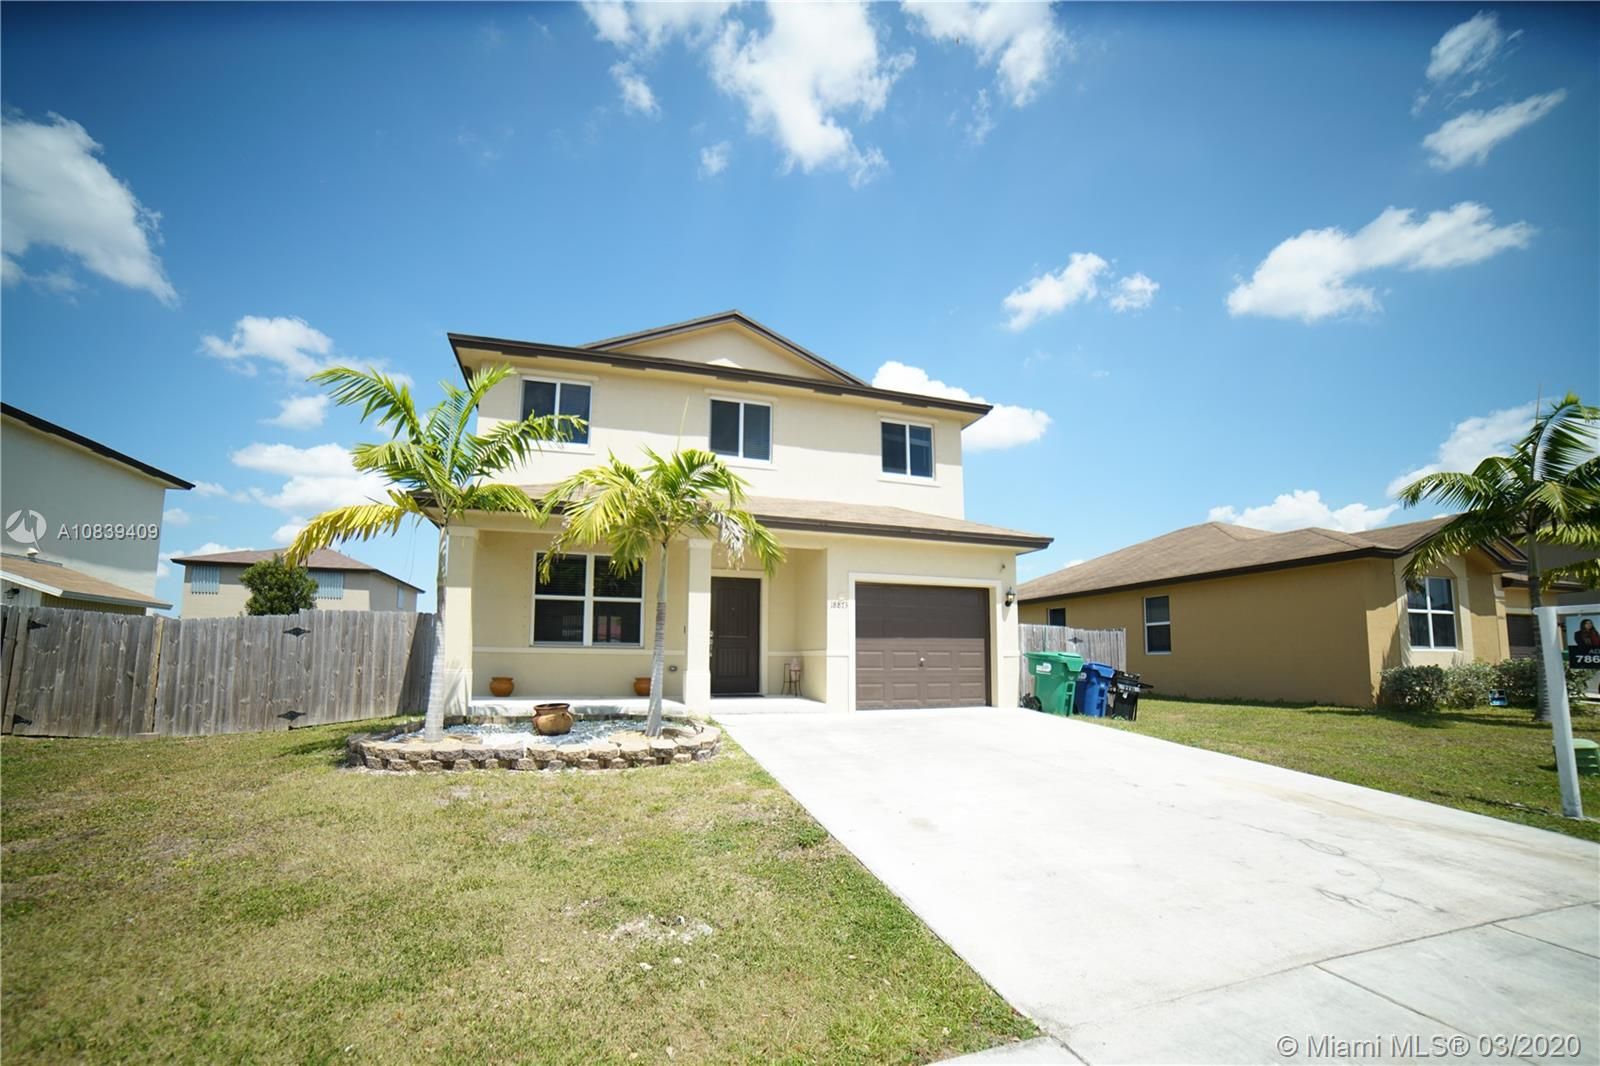 18873 SW 319th St, Homestead, FL 33030 - Homestead, FL real estate listing